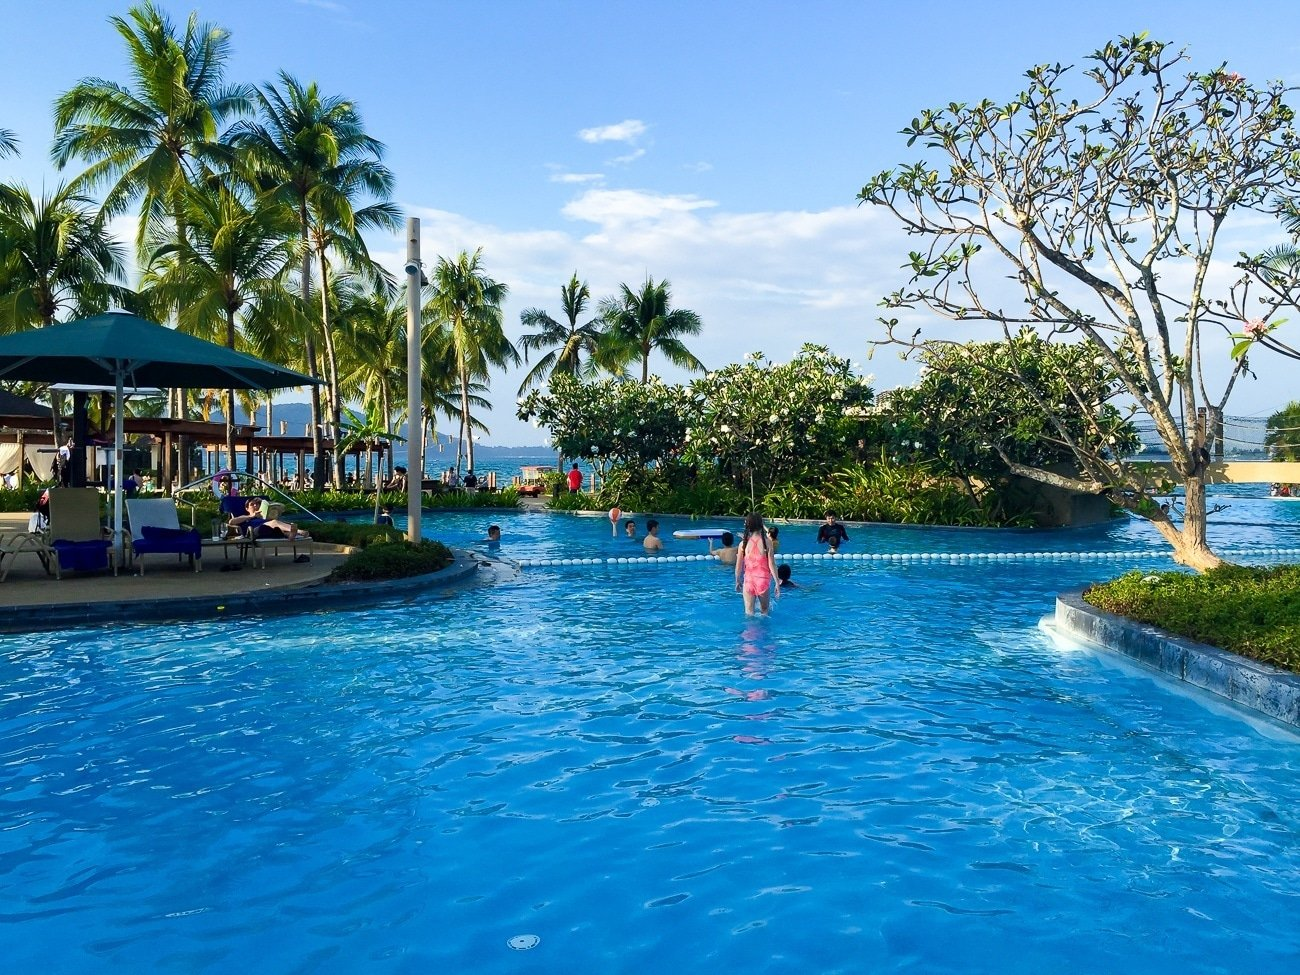 Shangri-la's Tanjung Aru Resort and Spa oceanfront pool is excellent for all ages.